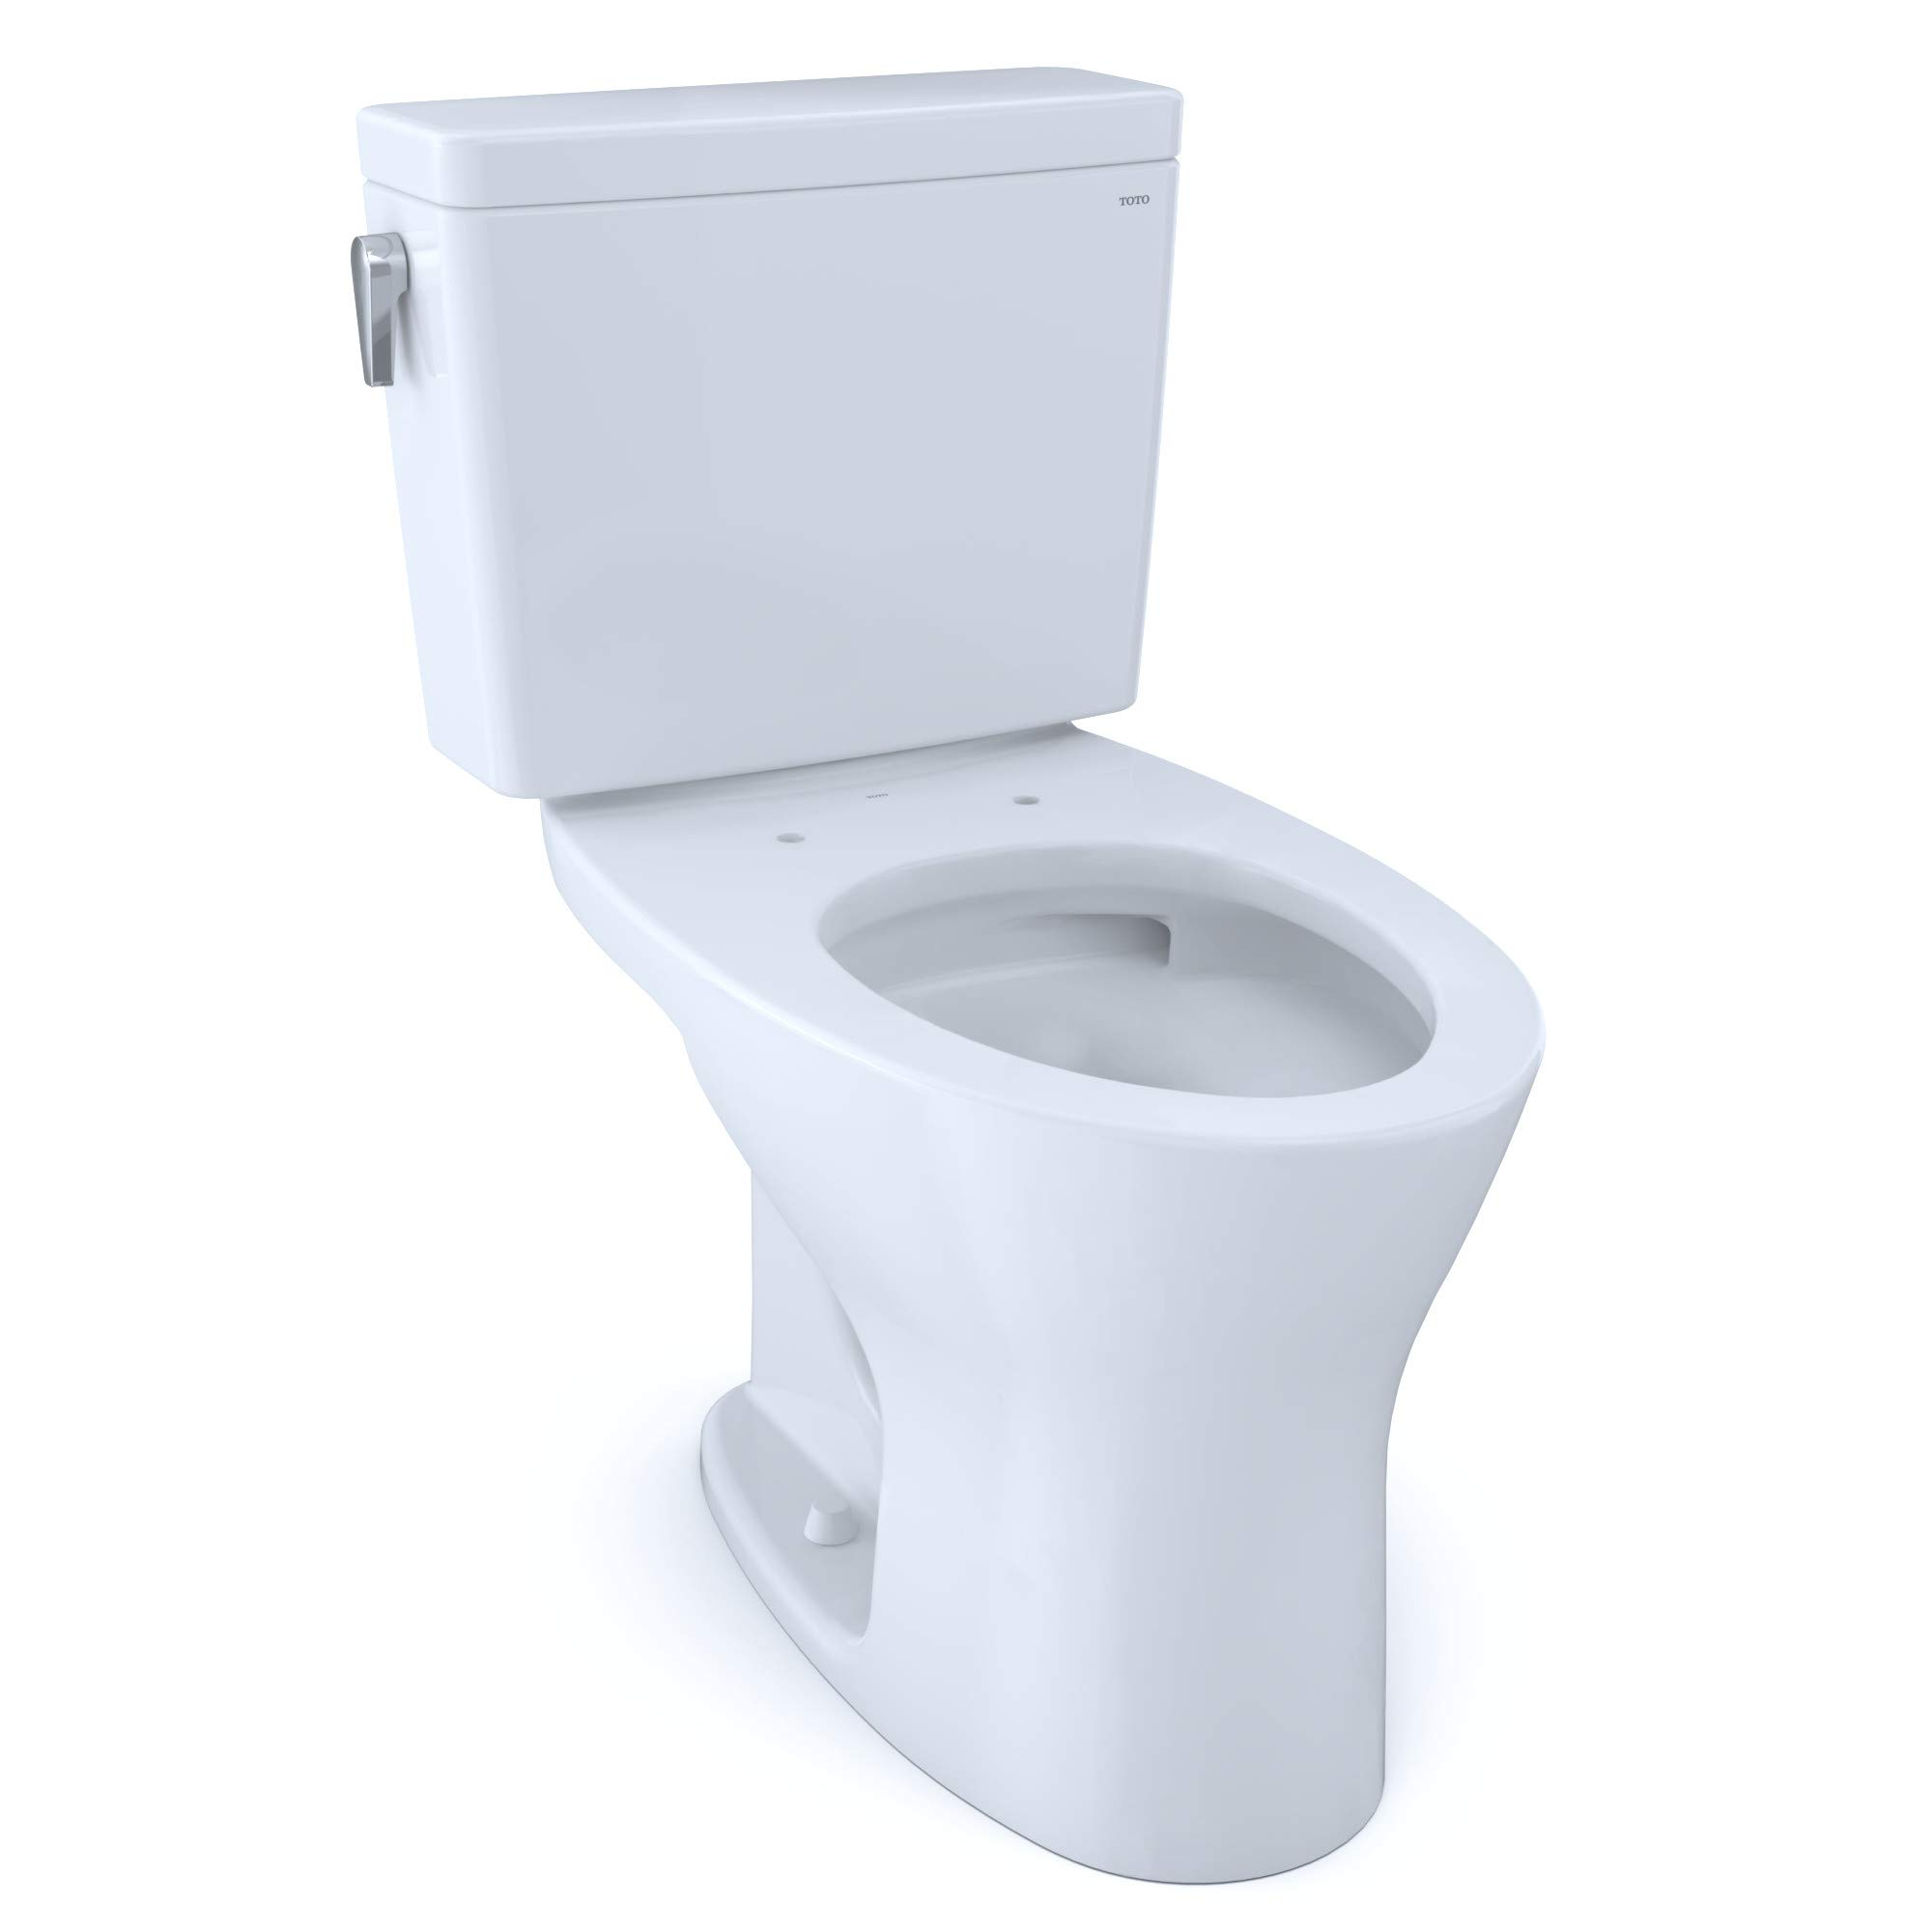 TOTO CST746CSMFG#01 Drake Two-Piece Elongated Dual Flush 1.6 and 0.8 GPF Universal Height DYNAMAX TORNADO FLUSH Toilet with CEFIONTECT, Cotton White by TOTO